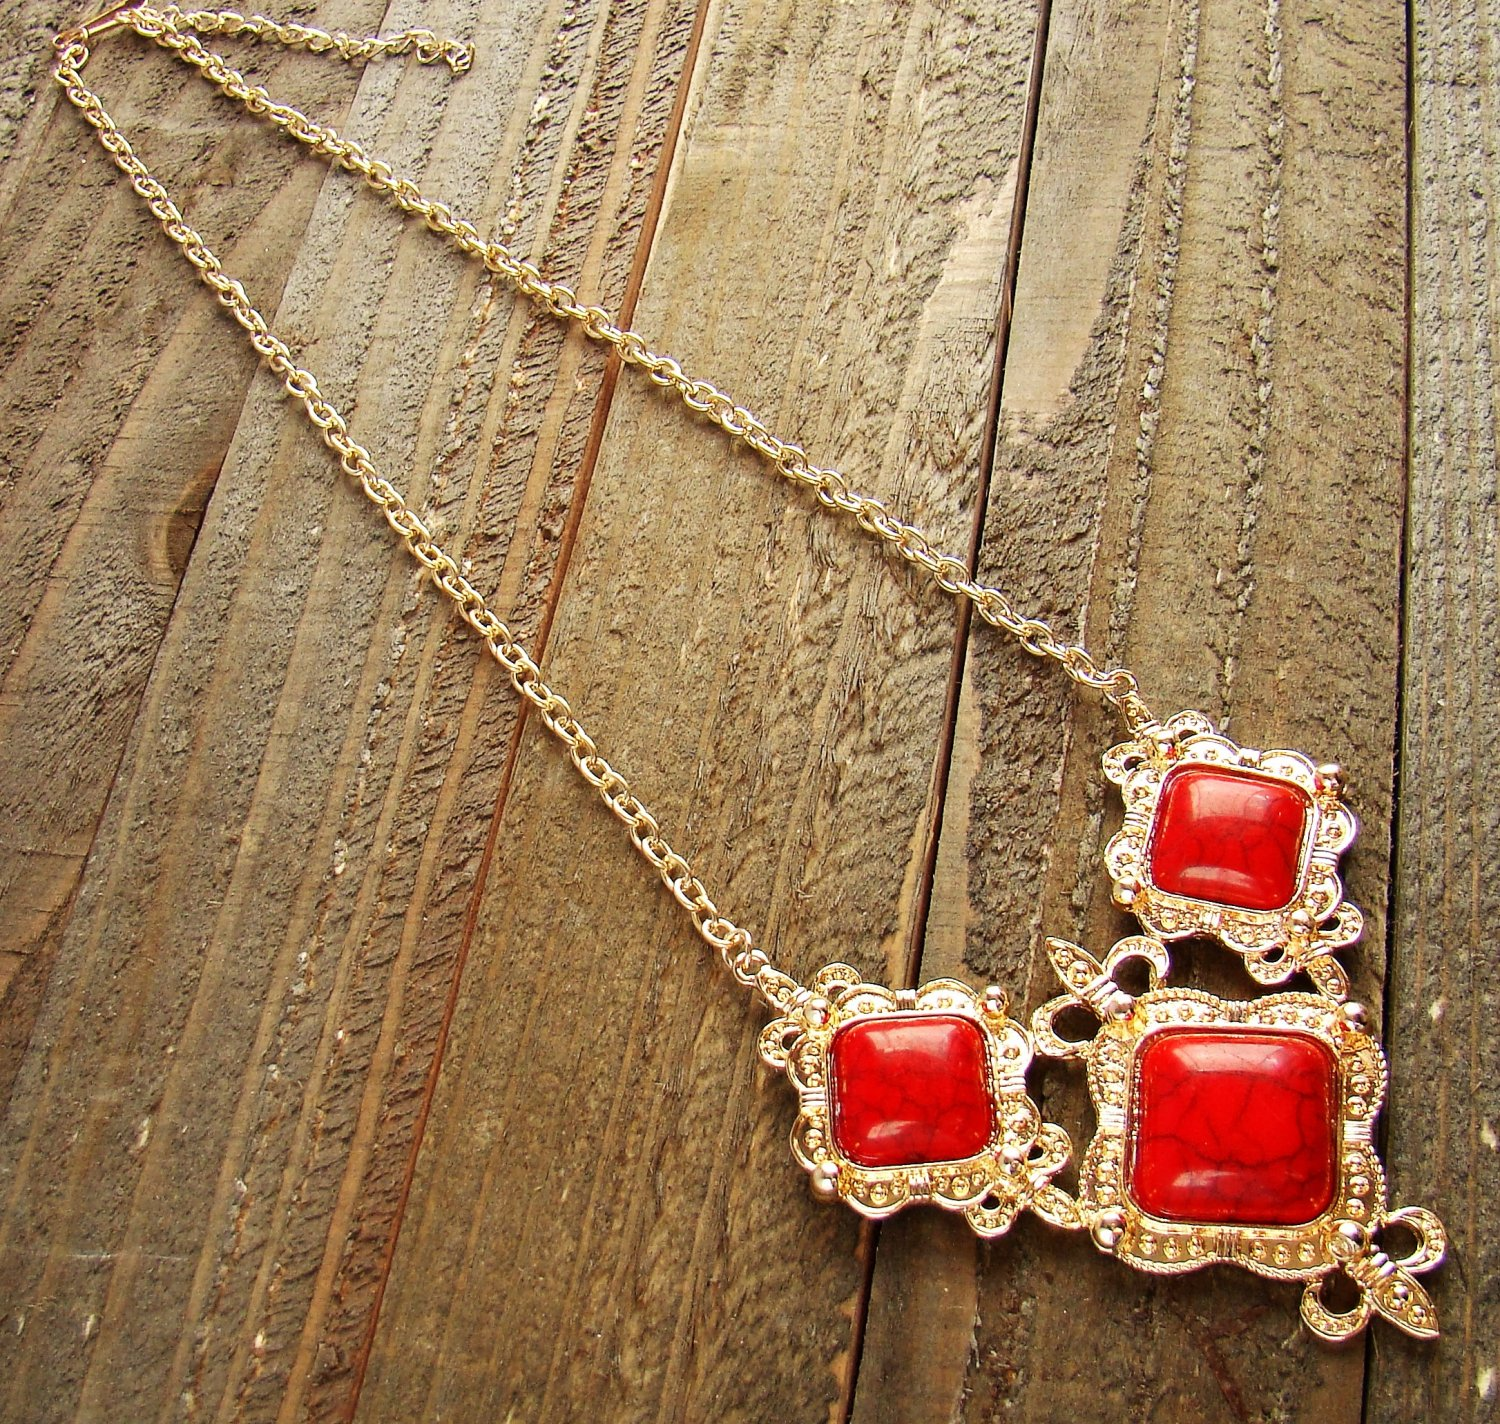 Filigree Triple Simulated Red Stone Pendant Gold Chain Necklace Cowgirl Fashion Jewelry